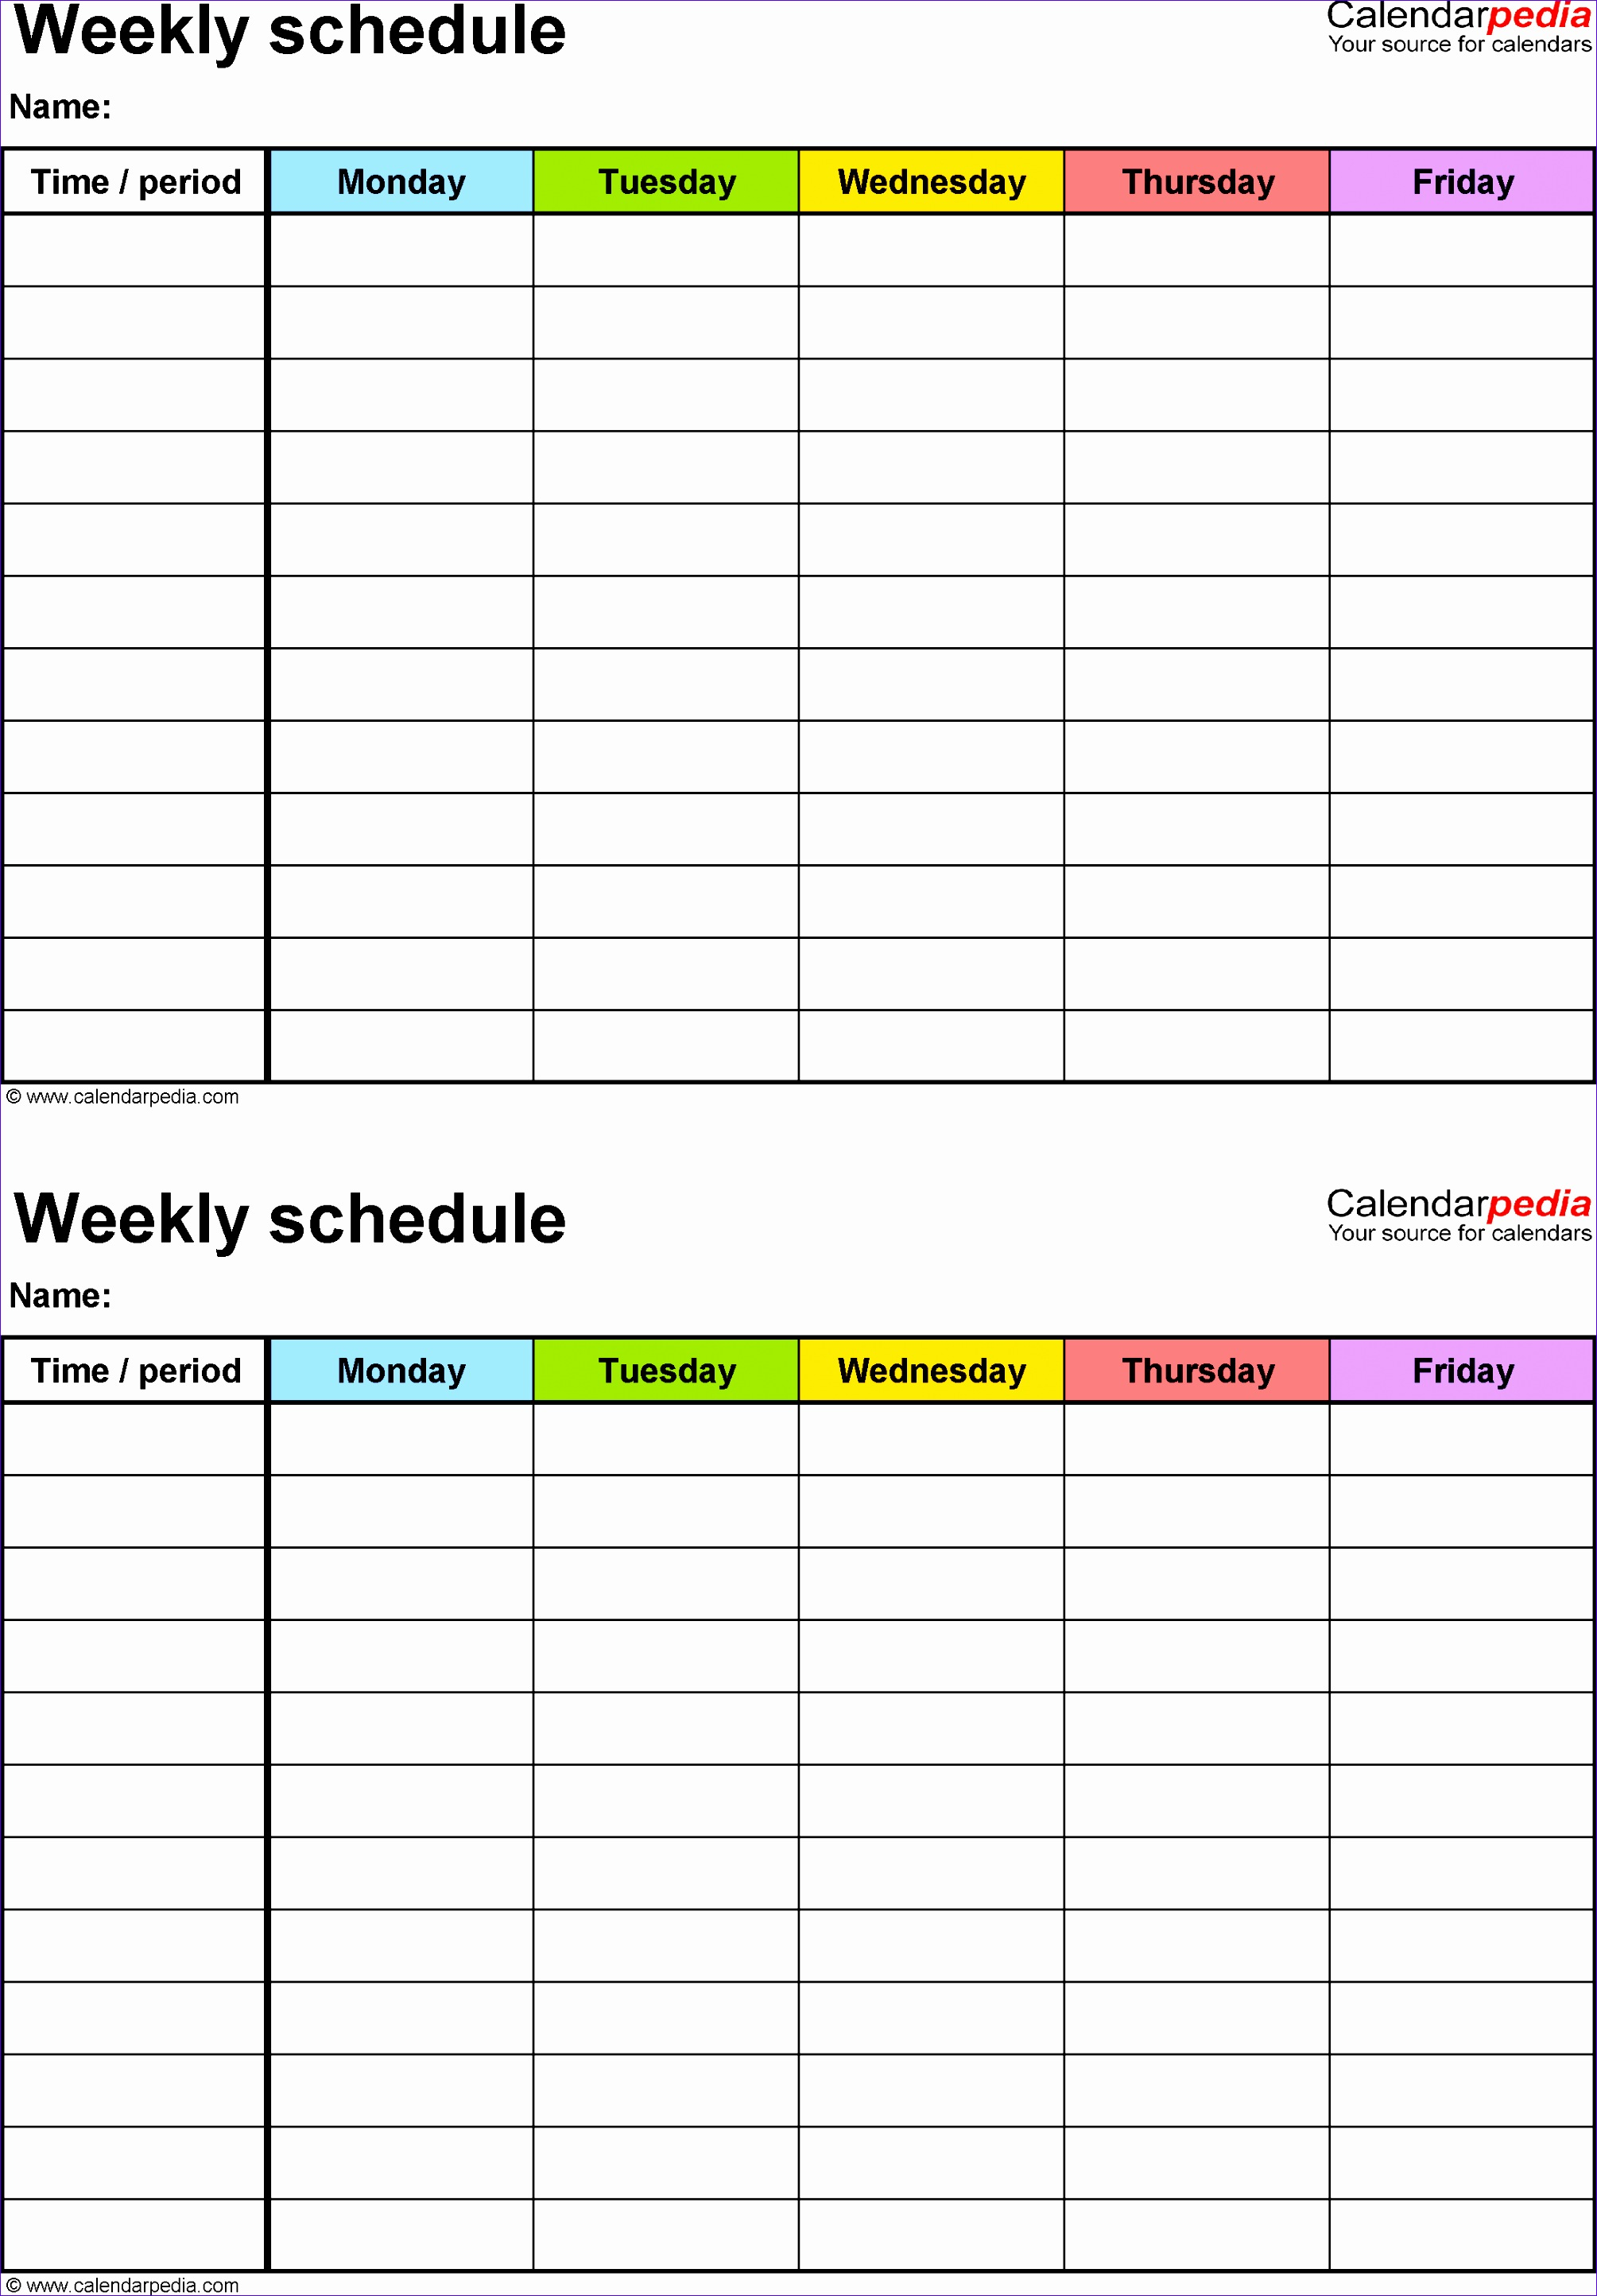 Excel 2007 Timeline Template Jgbsd Lovely Free Weekly Schedule Templates for Excel 18 Templates